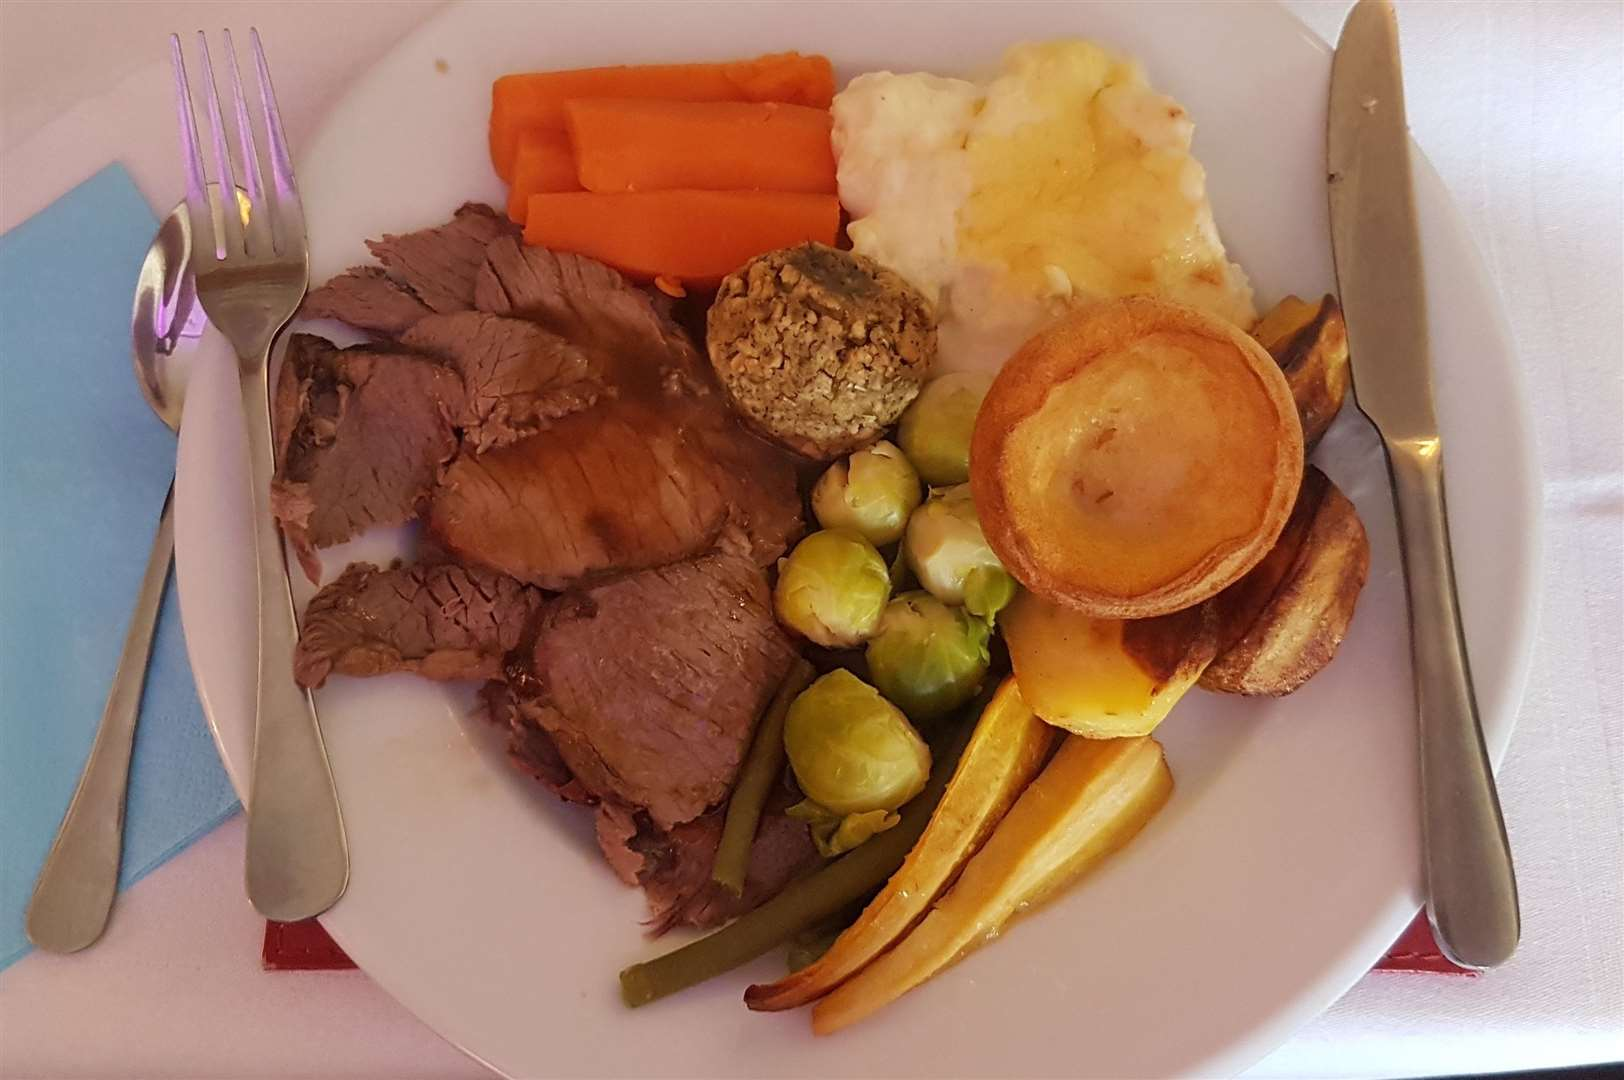 The £1 roast dinner at The Britannia in Margate (7654074)